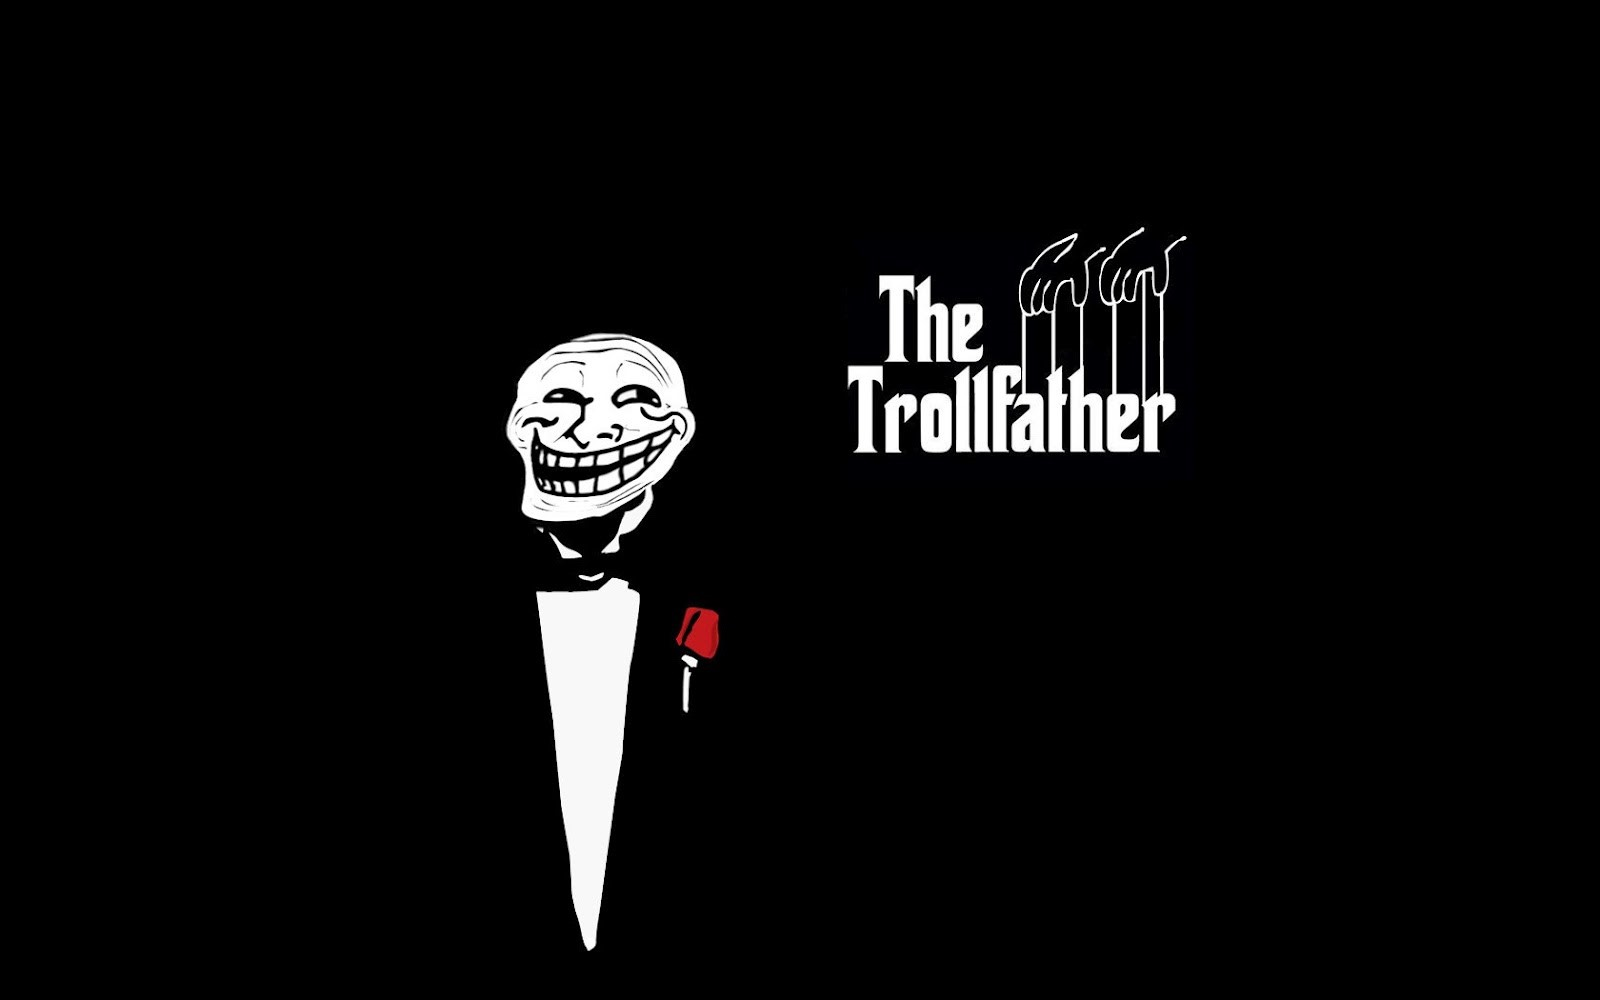 trollfather funny background